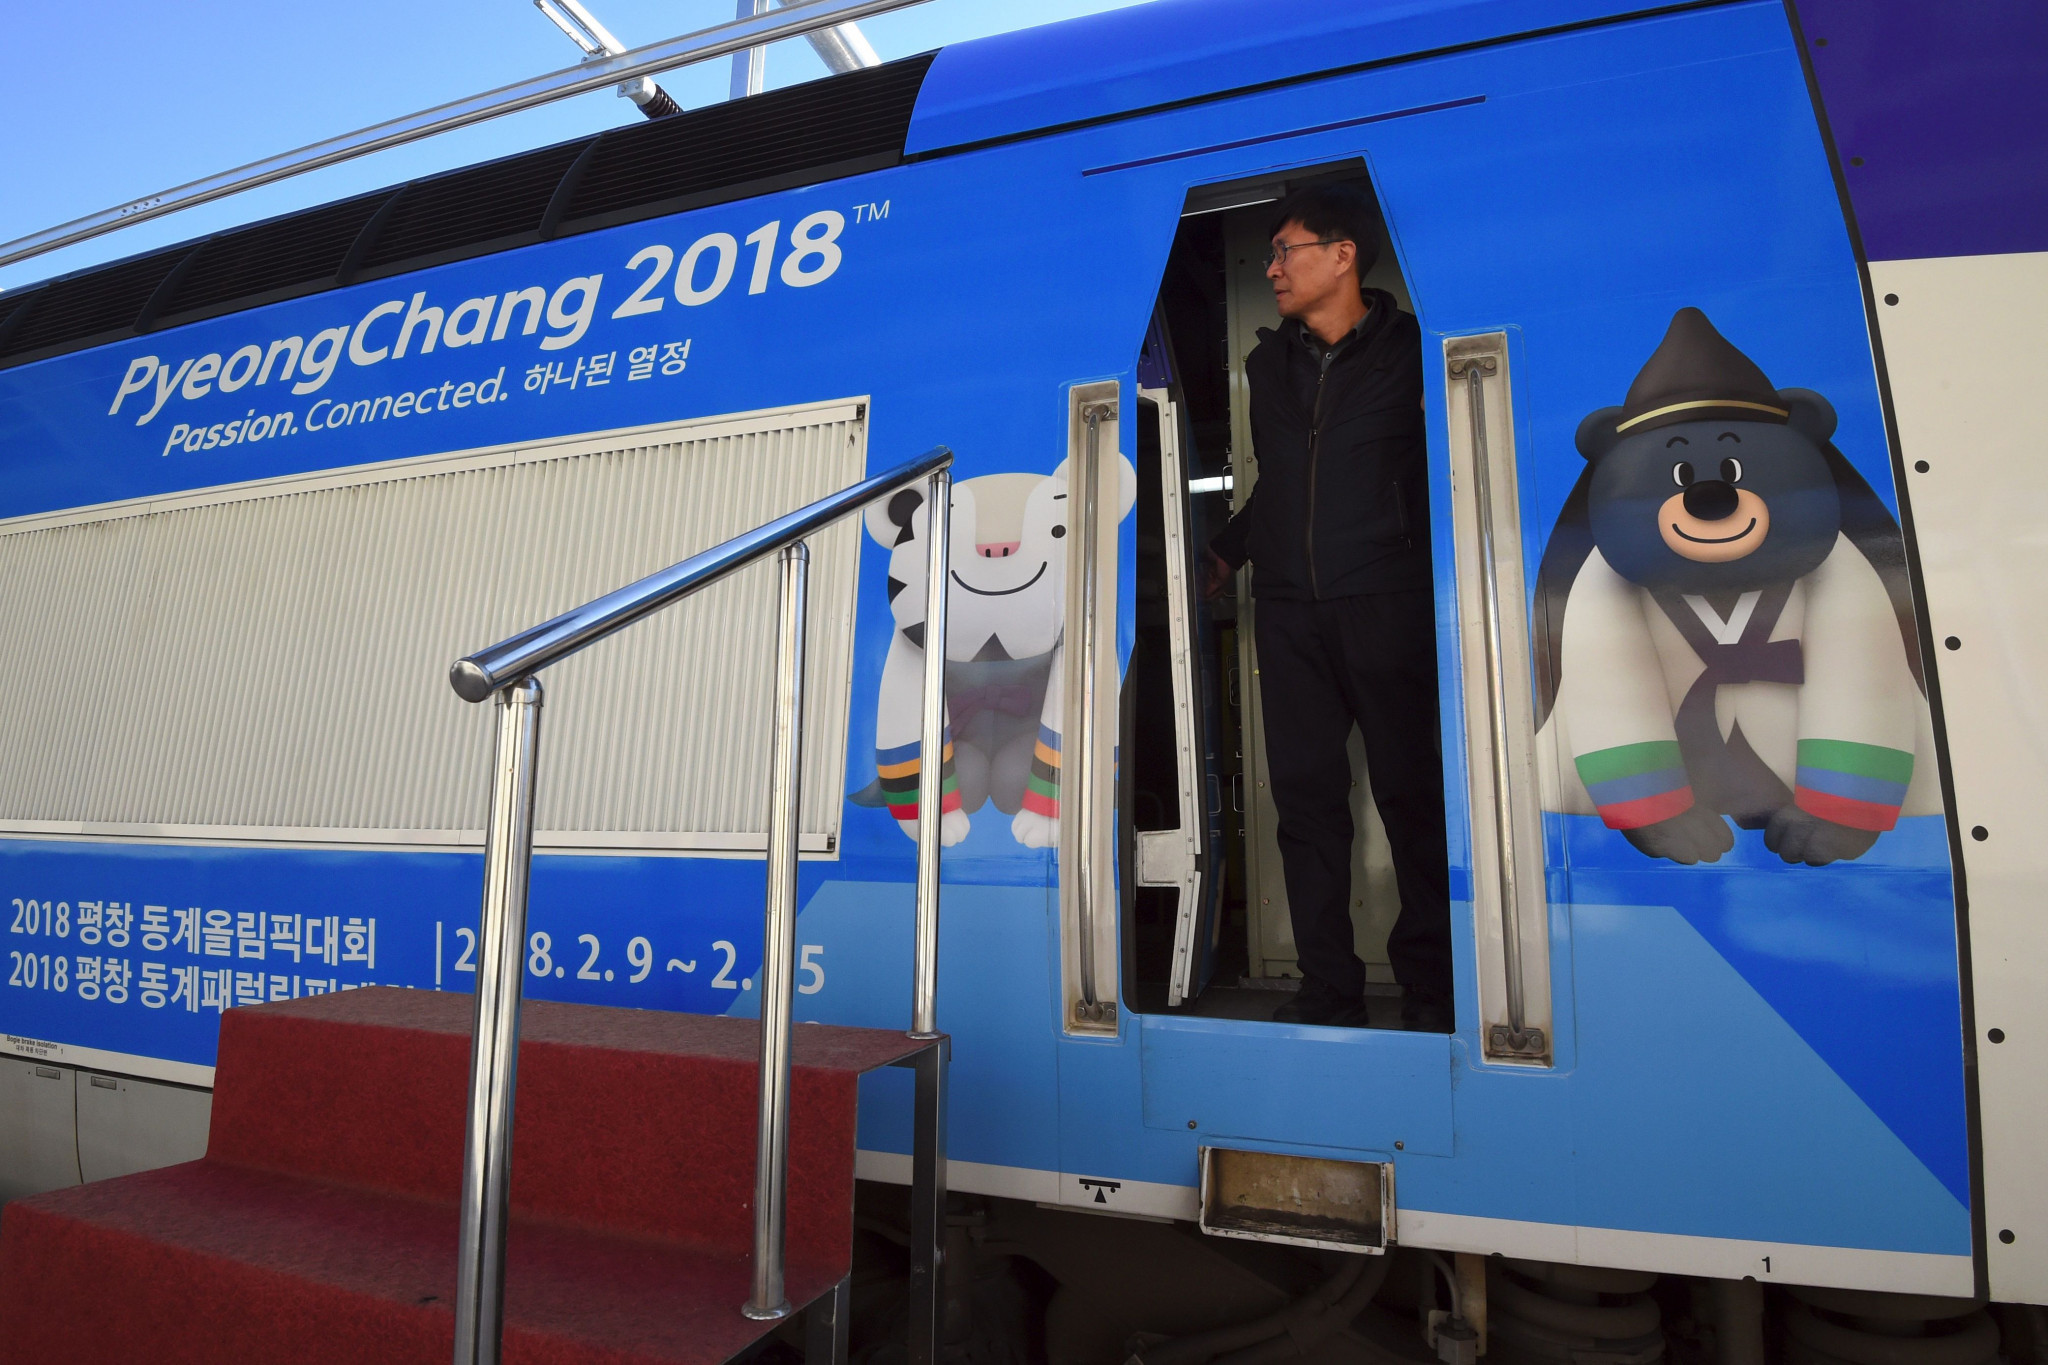 PyeongChang 2018 train